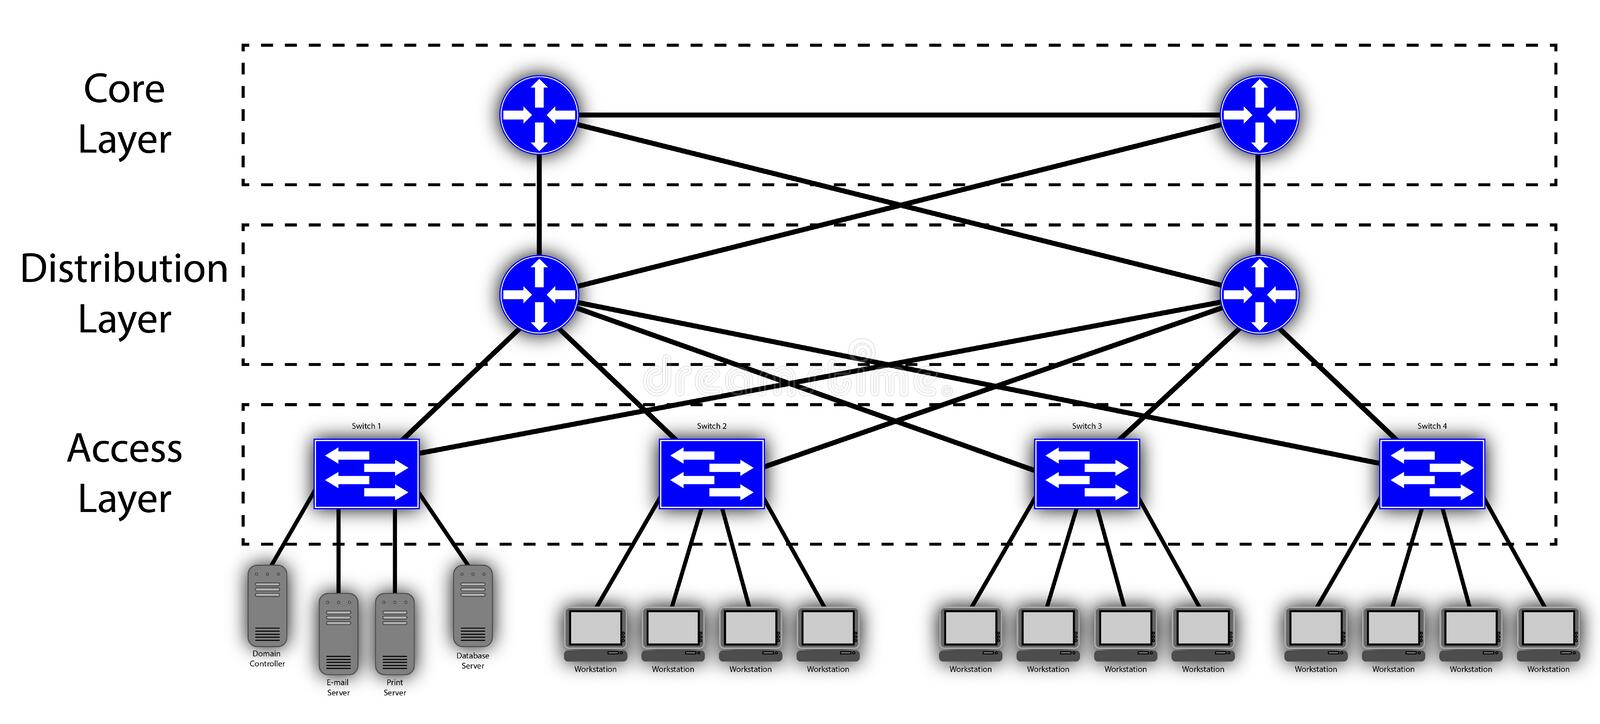 3 layer hierarchical mesh network diagram stock illustration download 3 layer hierarchical mesh network diagram stock illustration illustration of internet cable ccuart Gallery